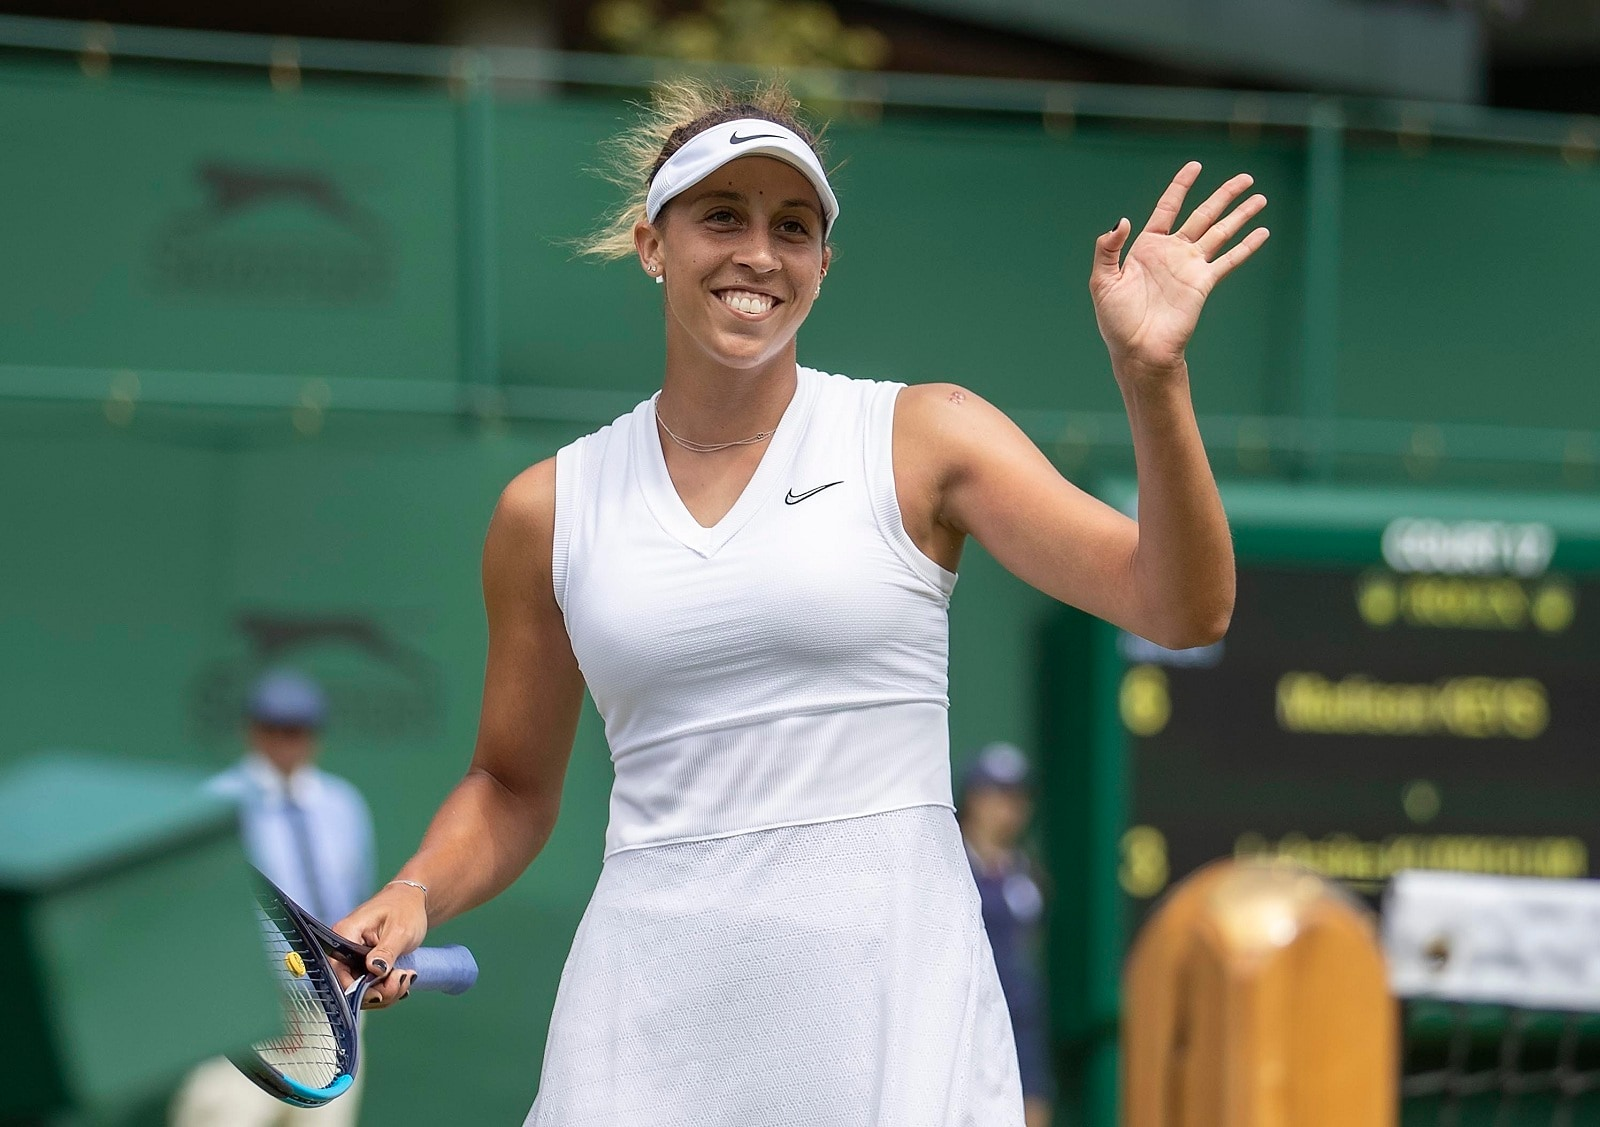 #13. Madison Keys (tie): Keys reached a pair of Grand Slam finals in 2018 (French Open and U.S. Open) and won her first clay court event of her career at the Charlestown Open this year. Nike is her biggest endorsement, and she also counts Evian, Wilson and Ultimate Software as partners. (Image: Reuters) (Caption Credit: Forbes)